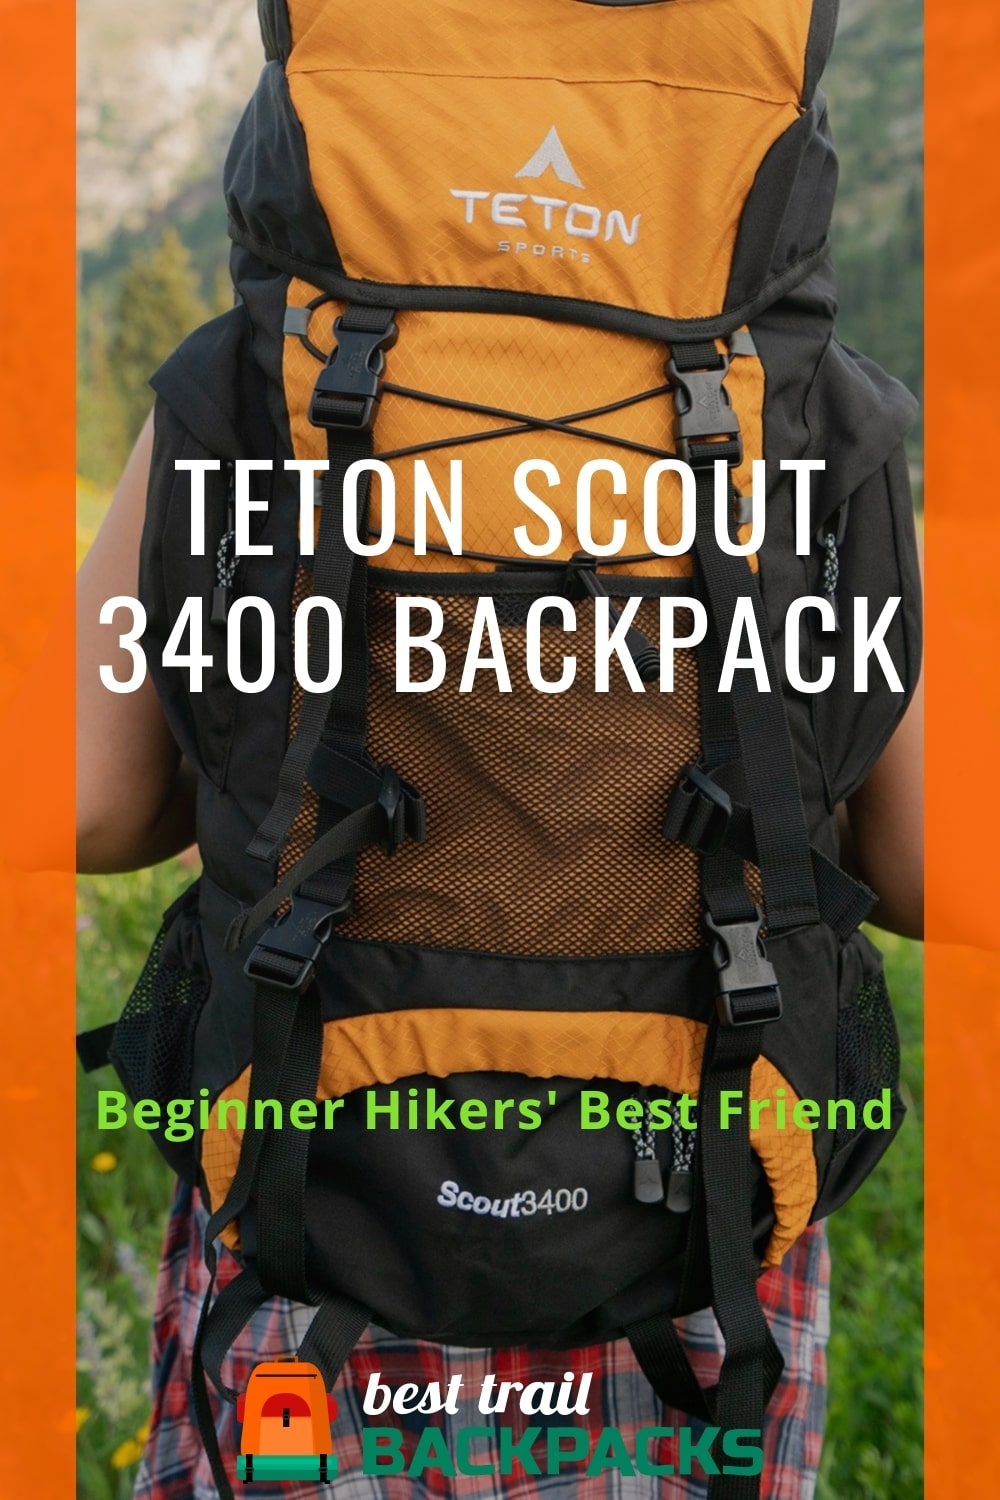 Teton Scout 3400 Backpack - Front View